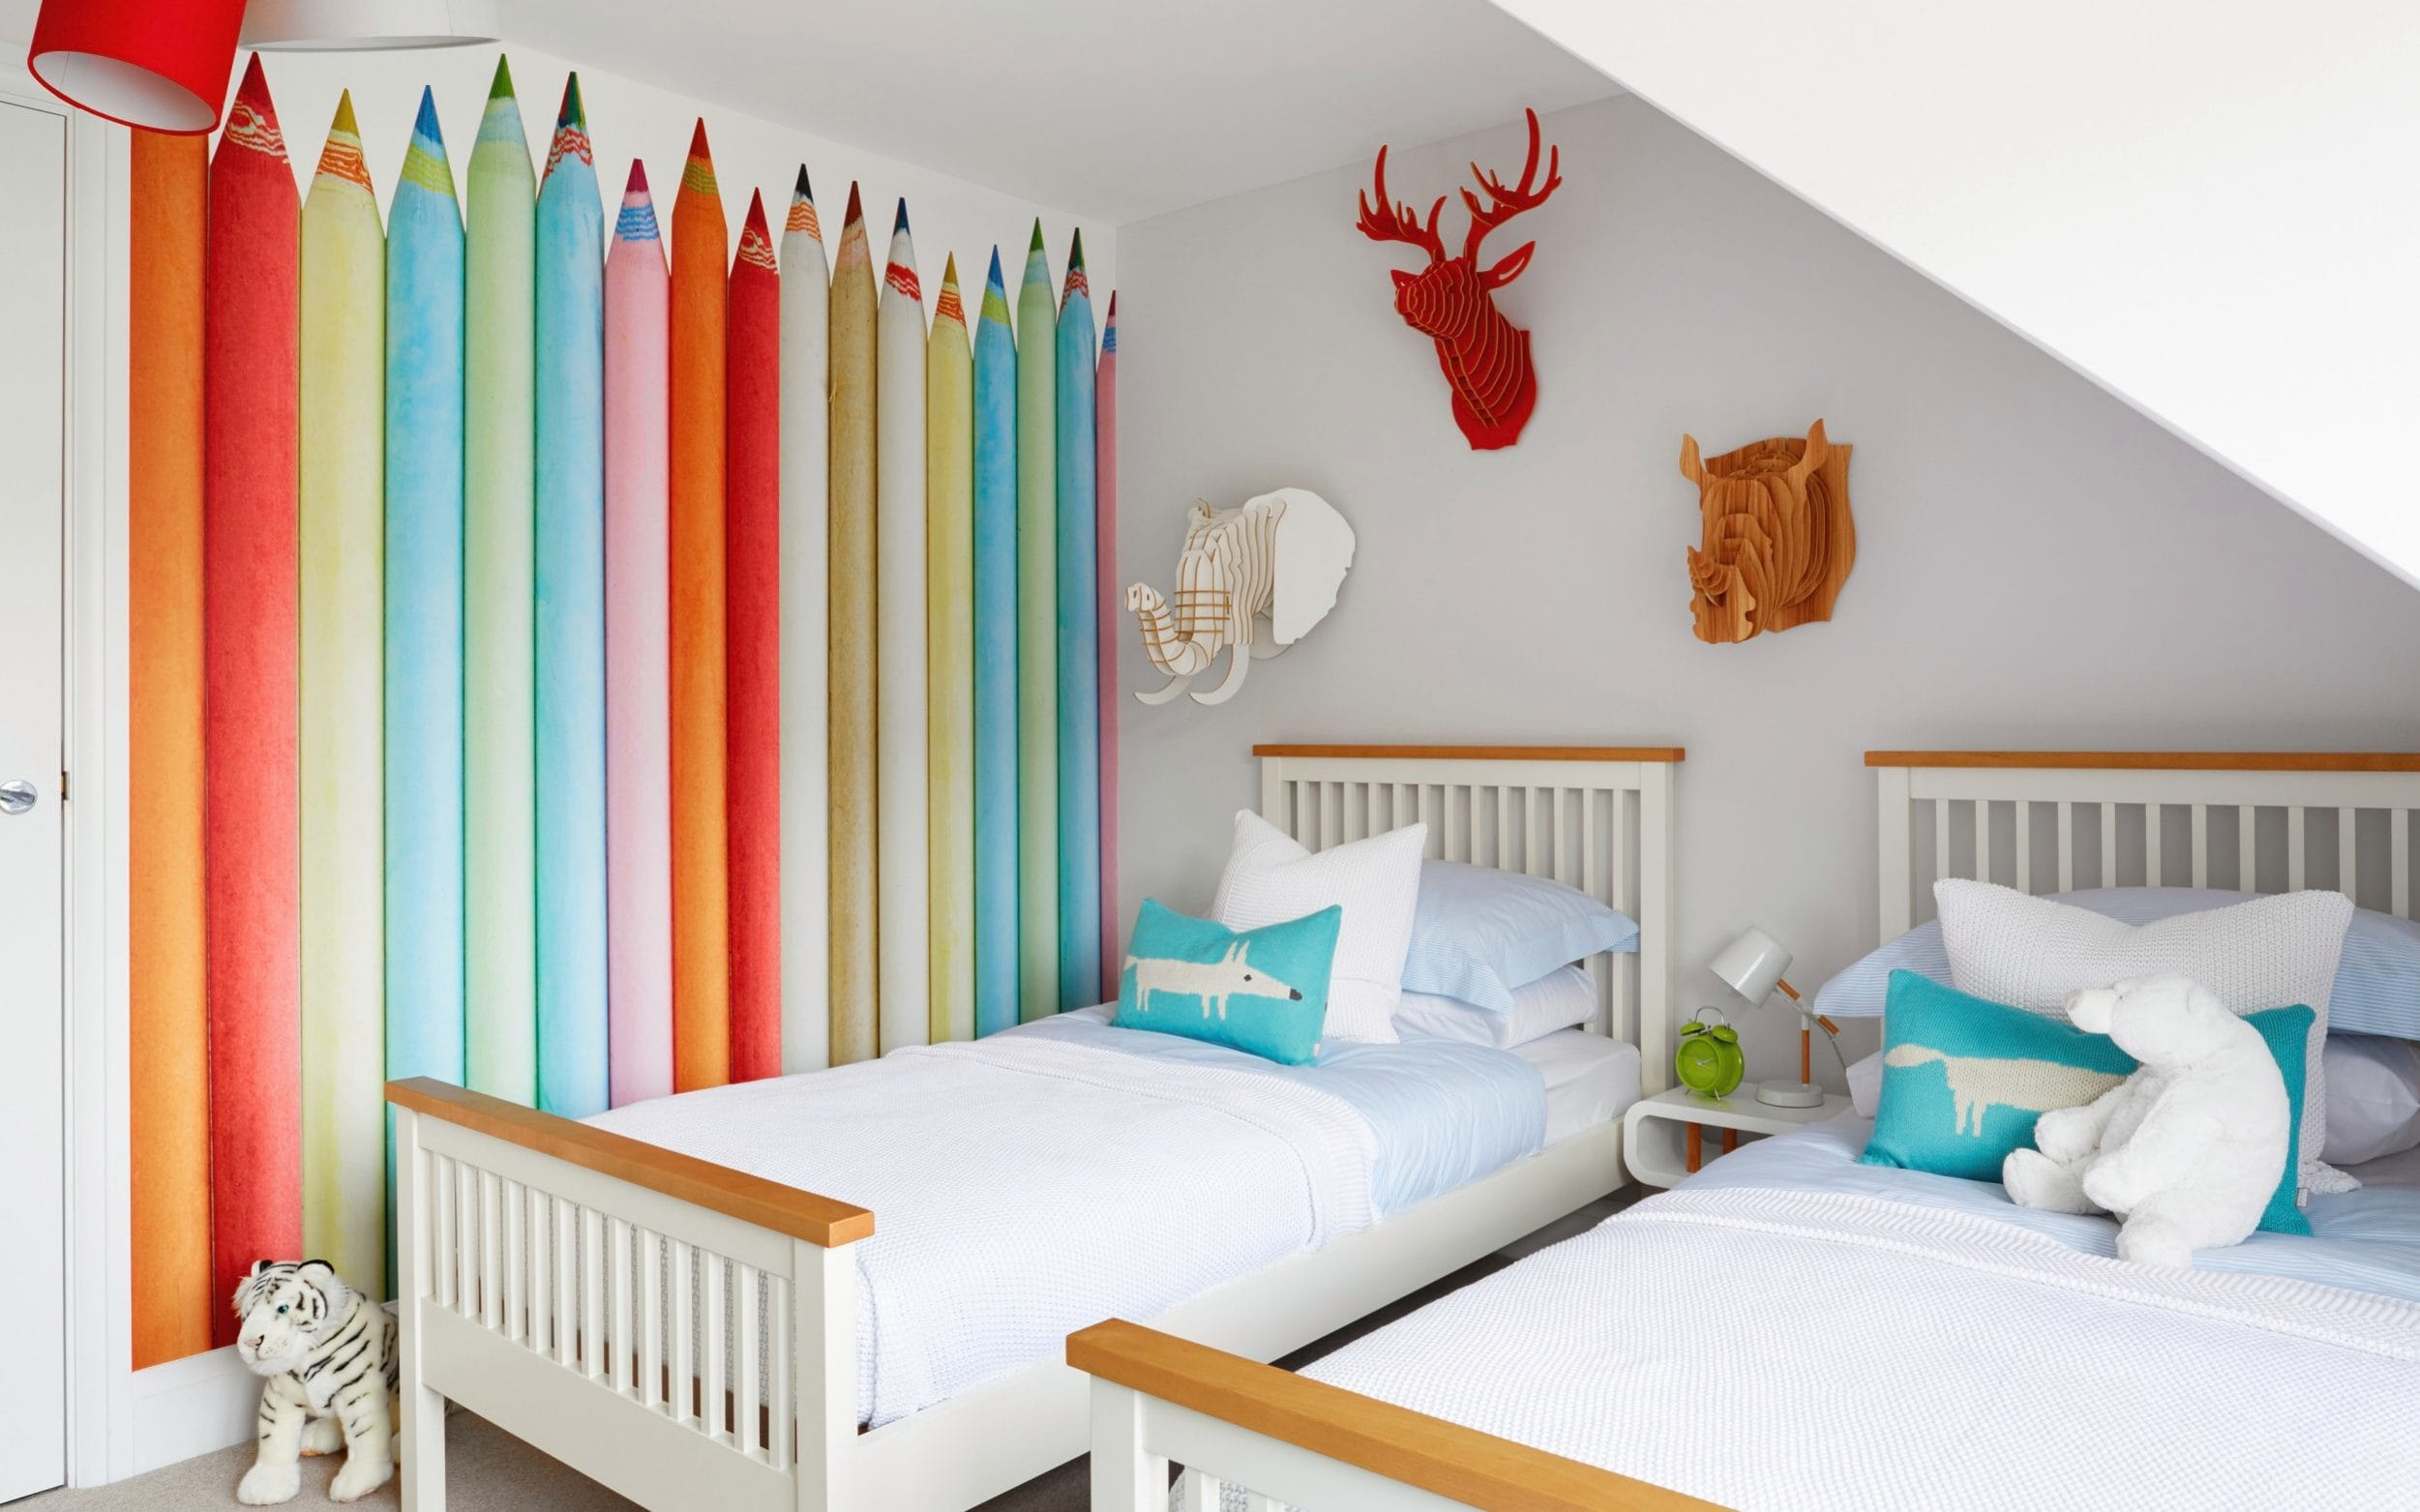 Putting the fun into functional: how to decorate your children's